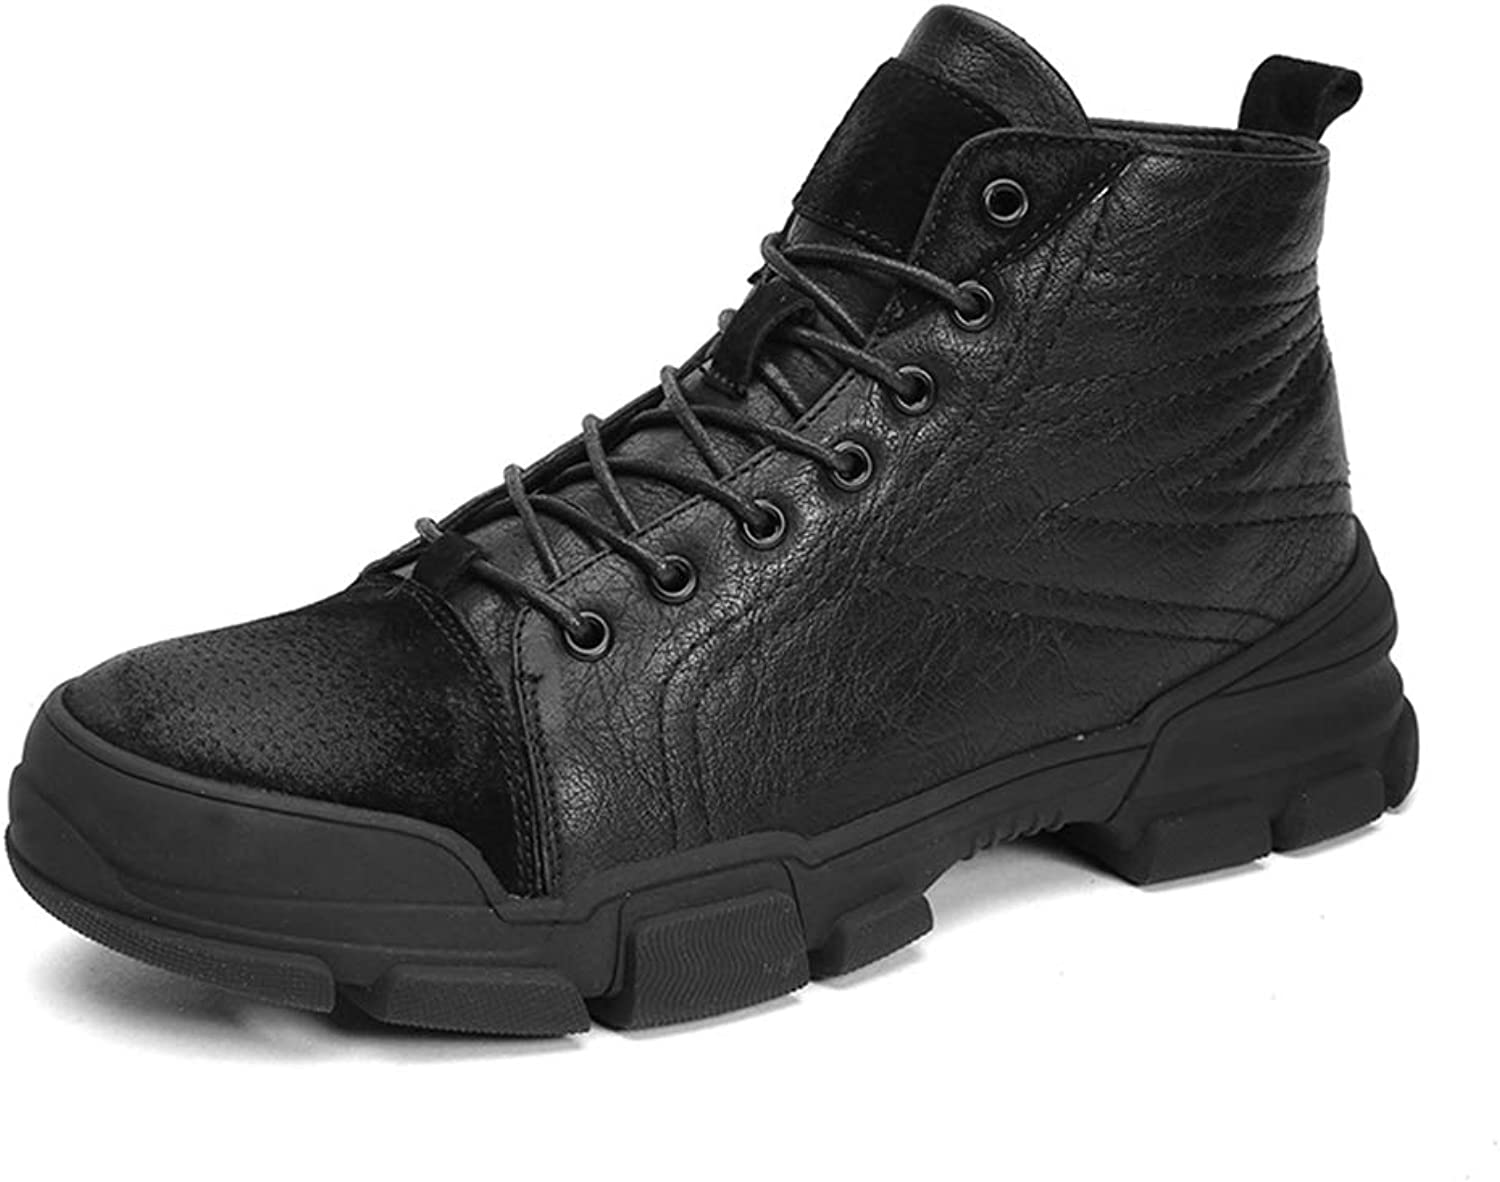 Men's Fashion Ankle Work Boot Casual Simple and Comfortable Classic Winter Faux Fleece Inside High Top Boot